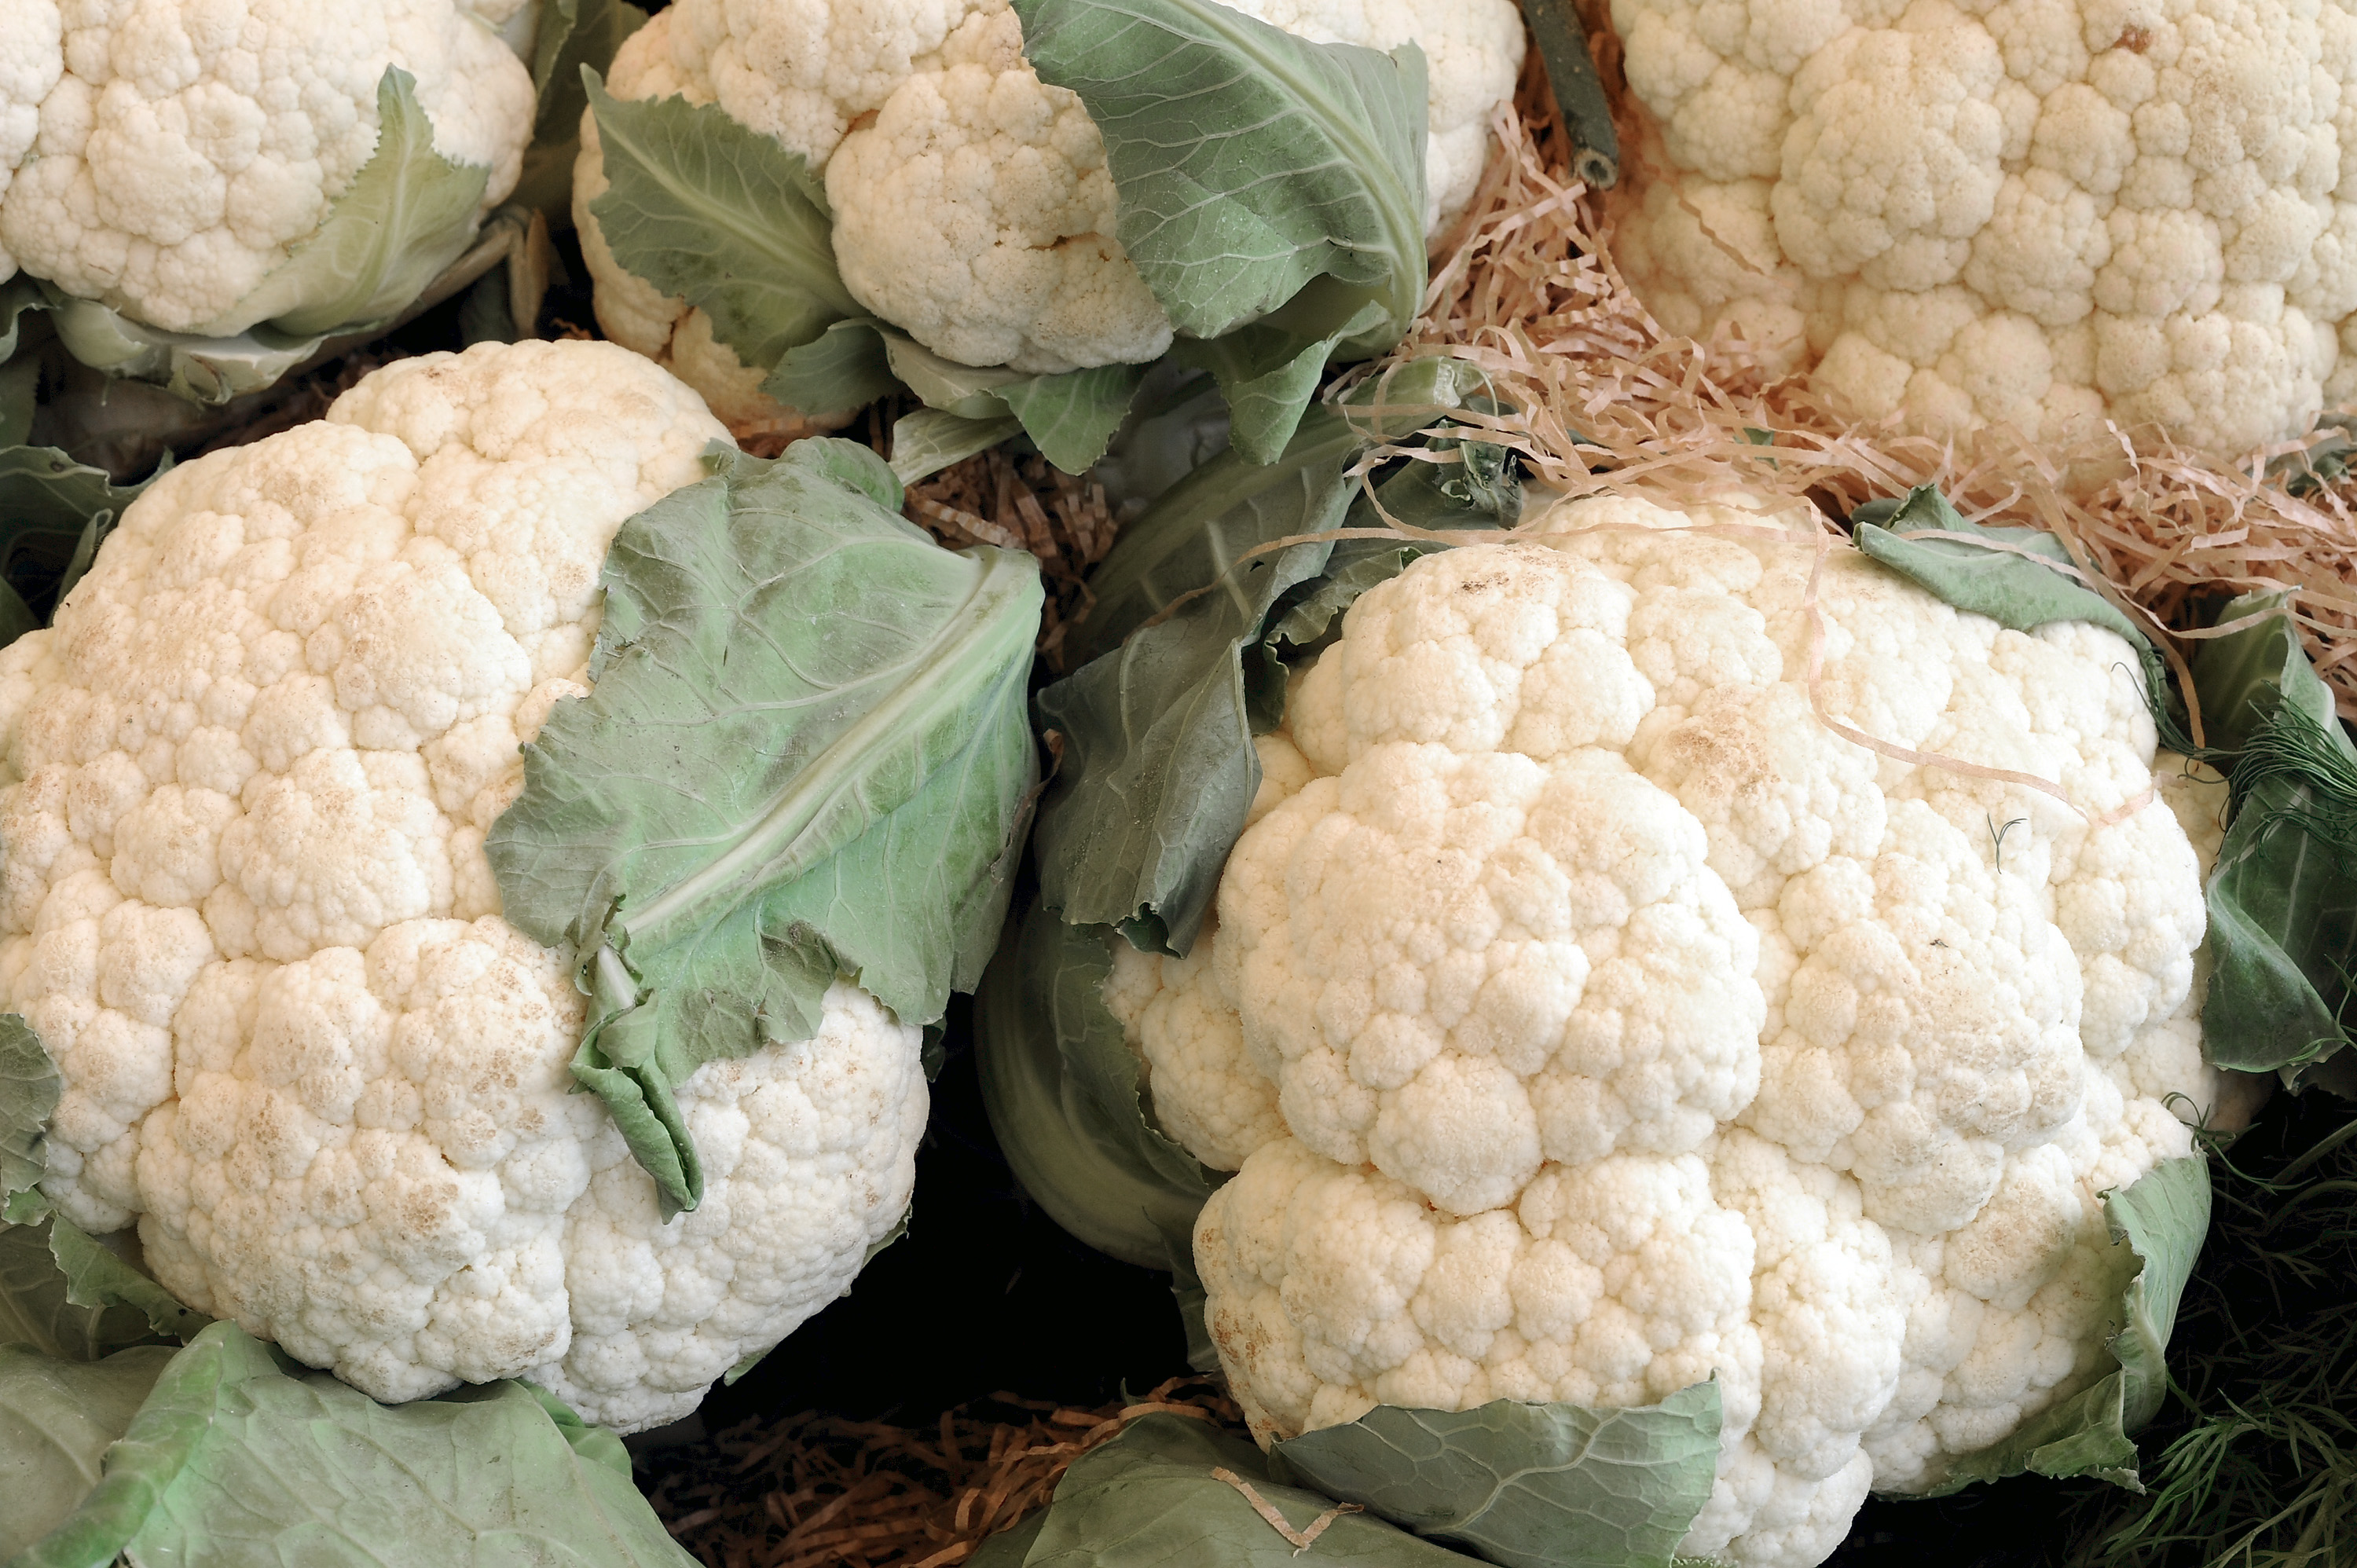 Some white cauliflower are displayed during the Expo 2015 at Fiera Milano Rho on May 29, 2015 in Milan, Italy.